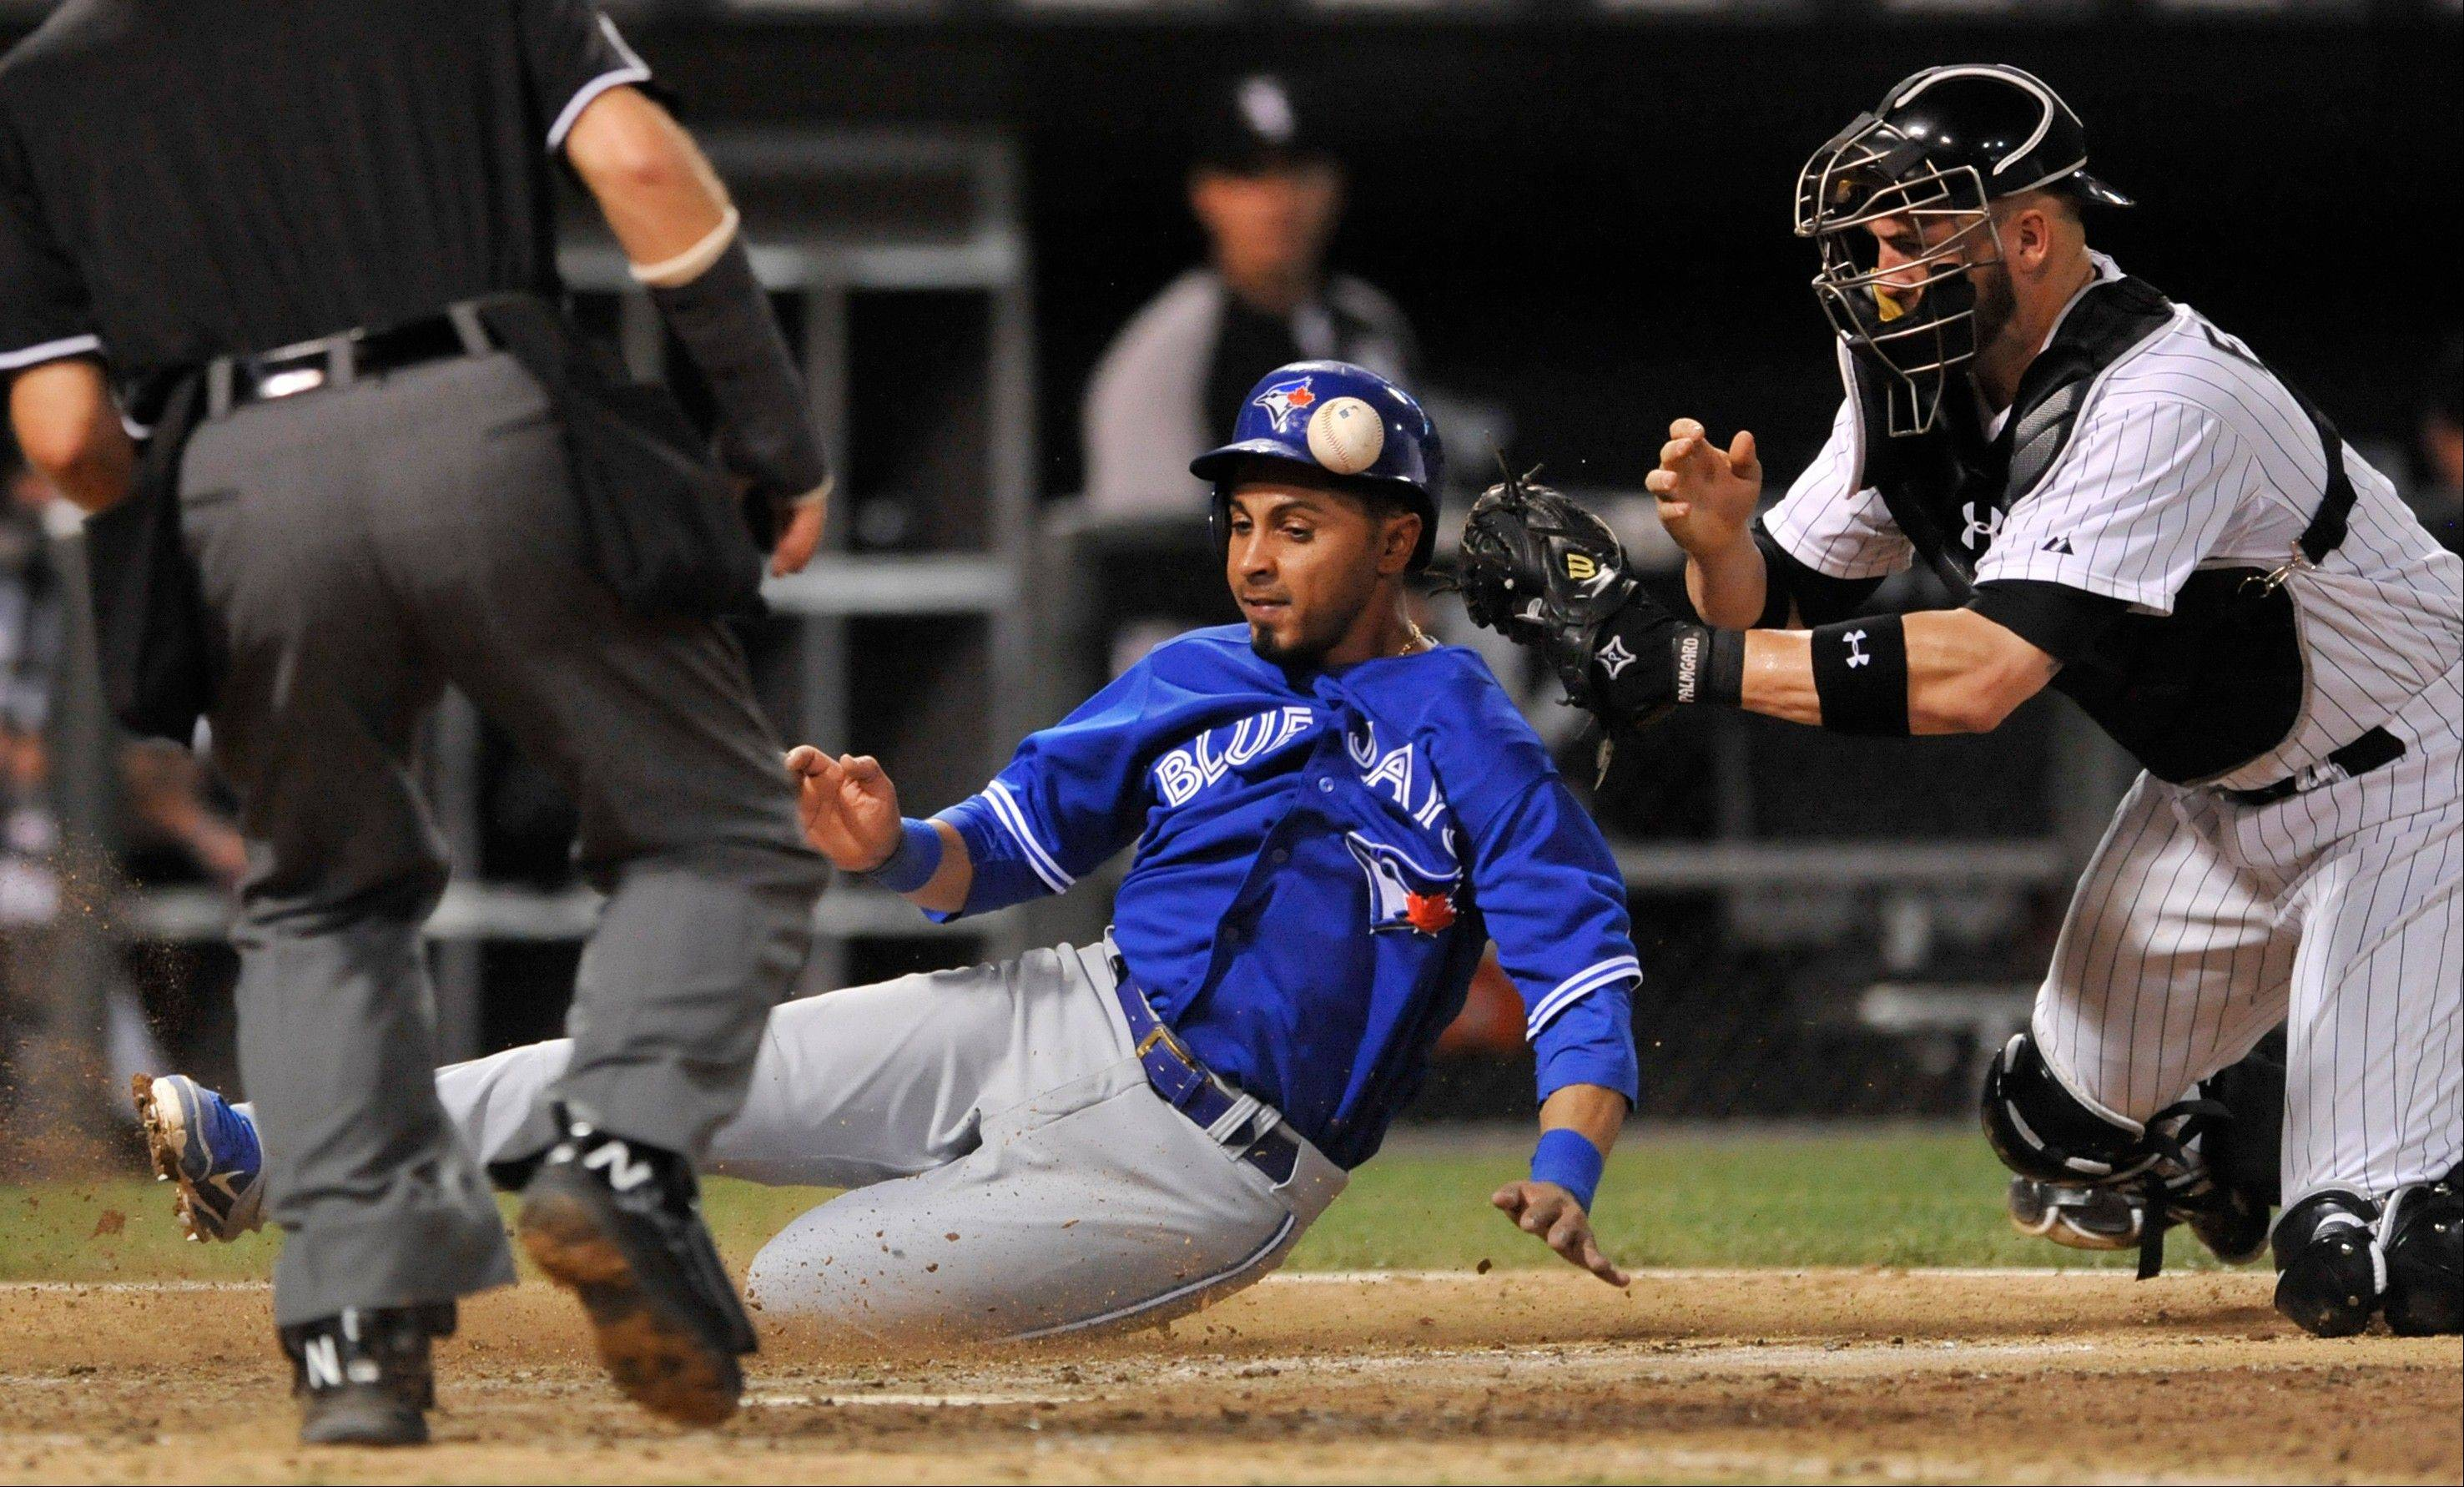 Maicer Izturis scores on a Munenori Kawasaki double as Tyler Flowers tries to apply the tag during the 10th inning of Toronto's victory over the White Sox on Tuesday at U.S. Cellular Field.